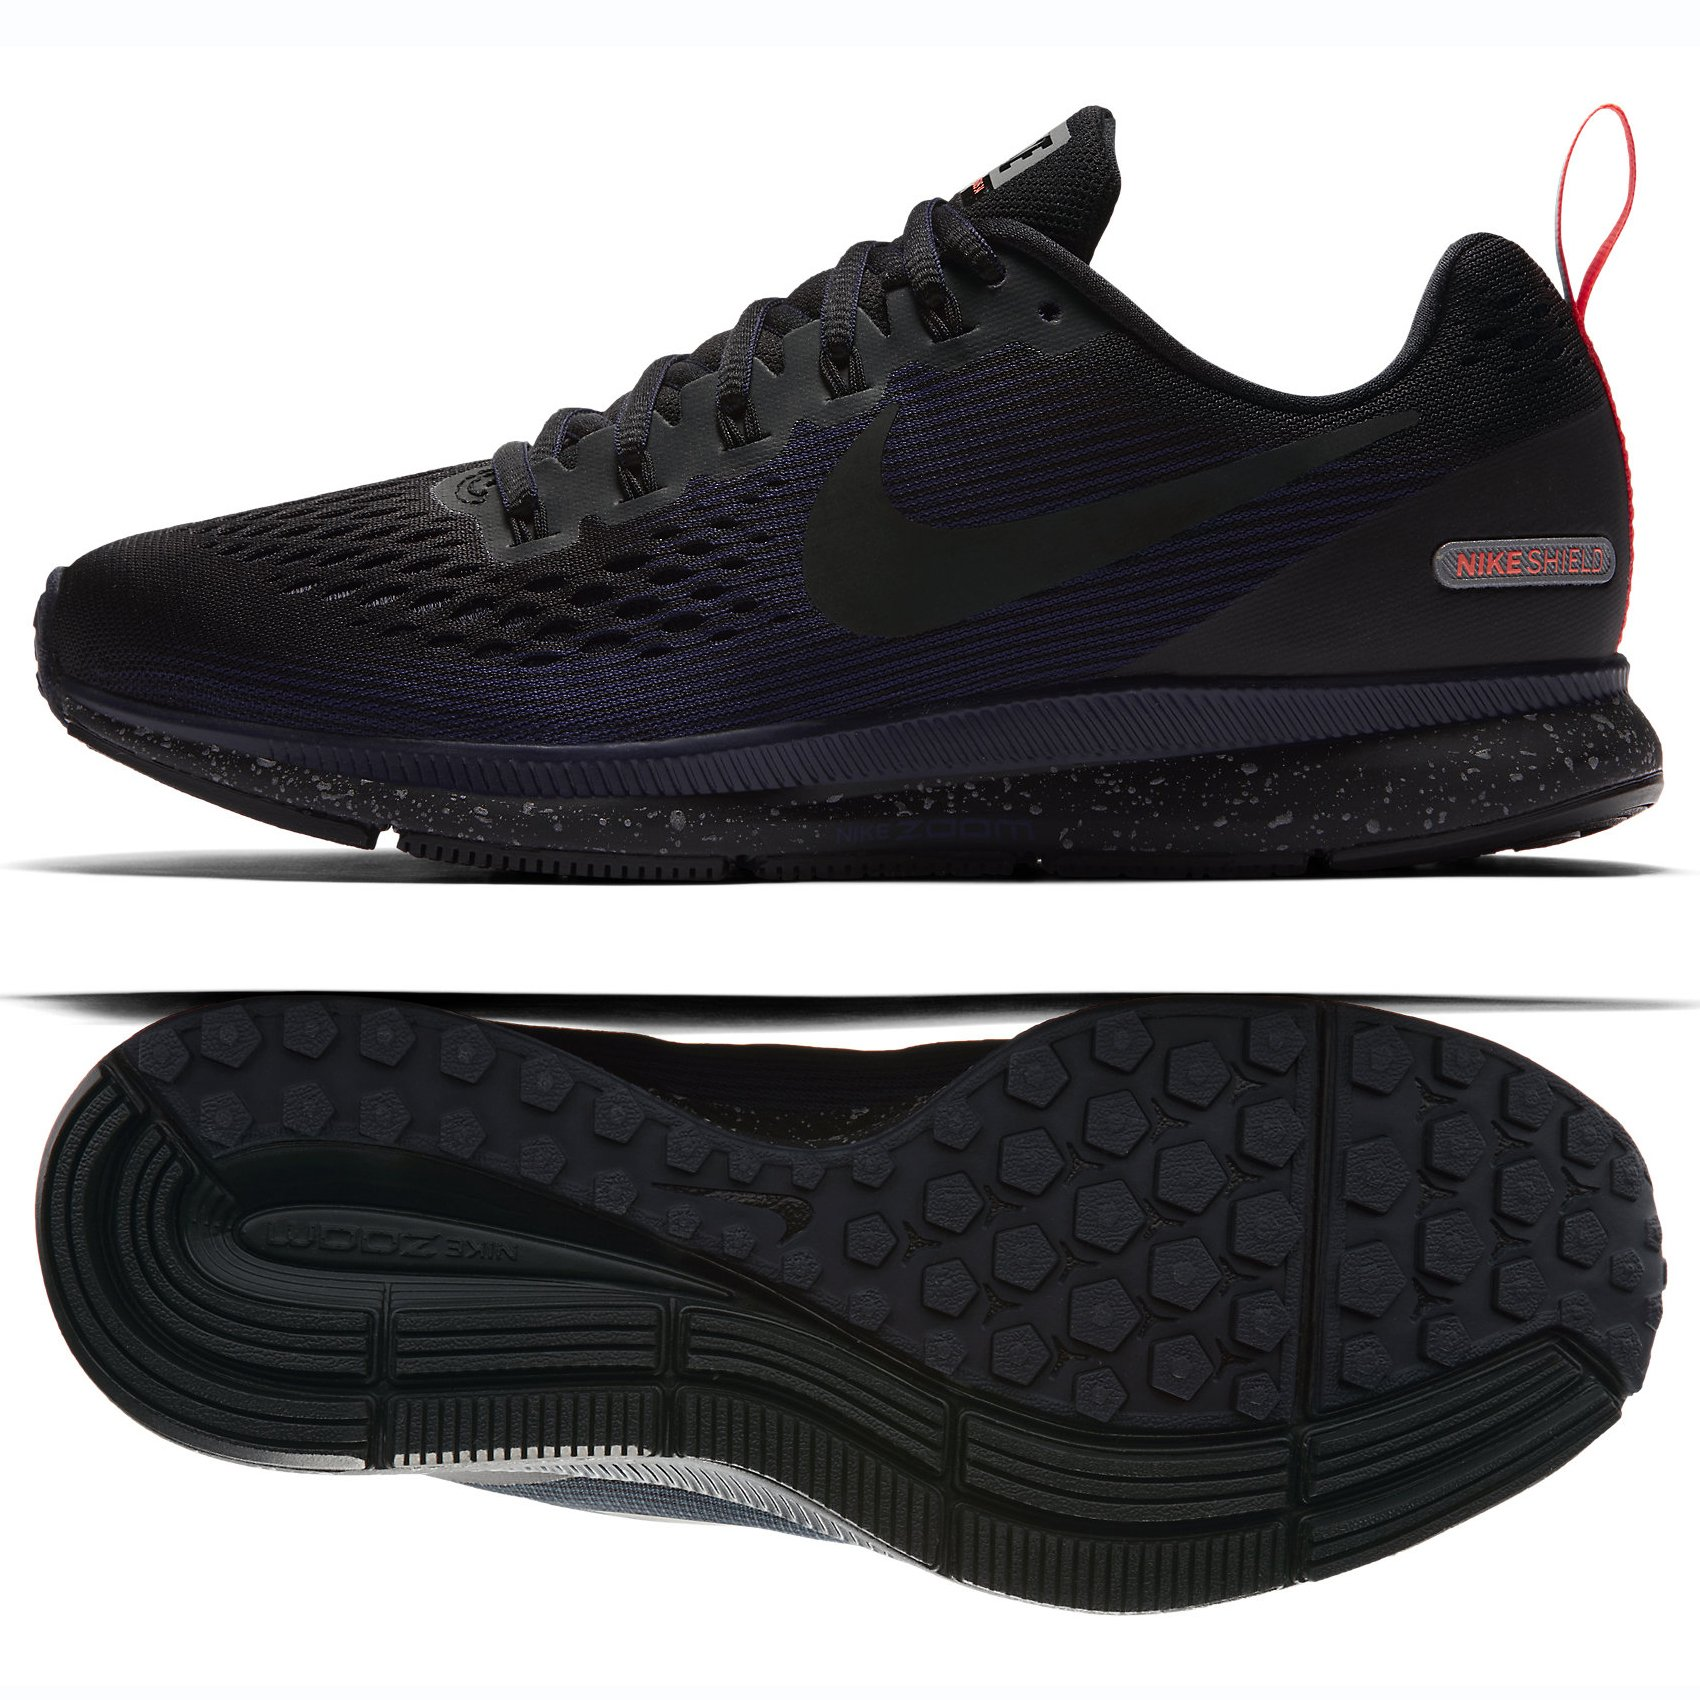 premium selection fed8f 6a86a Nike Women's Air Zoom Pegasus 34 Running Shield Shoe  Black/Black-Black-Obsidian 6.5